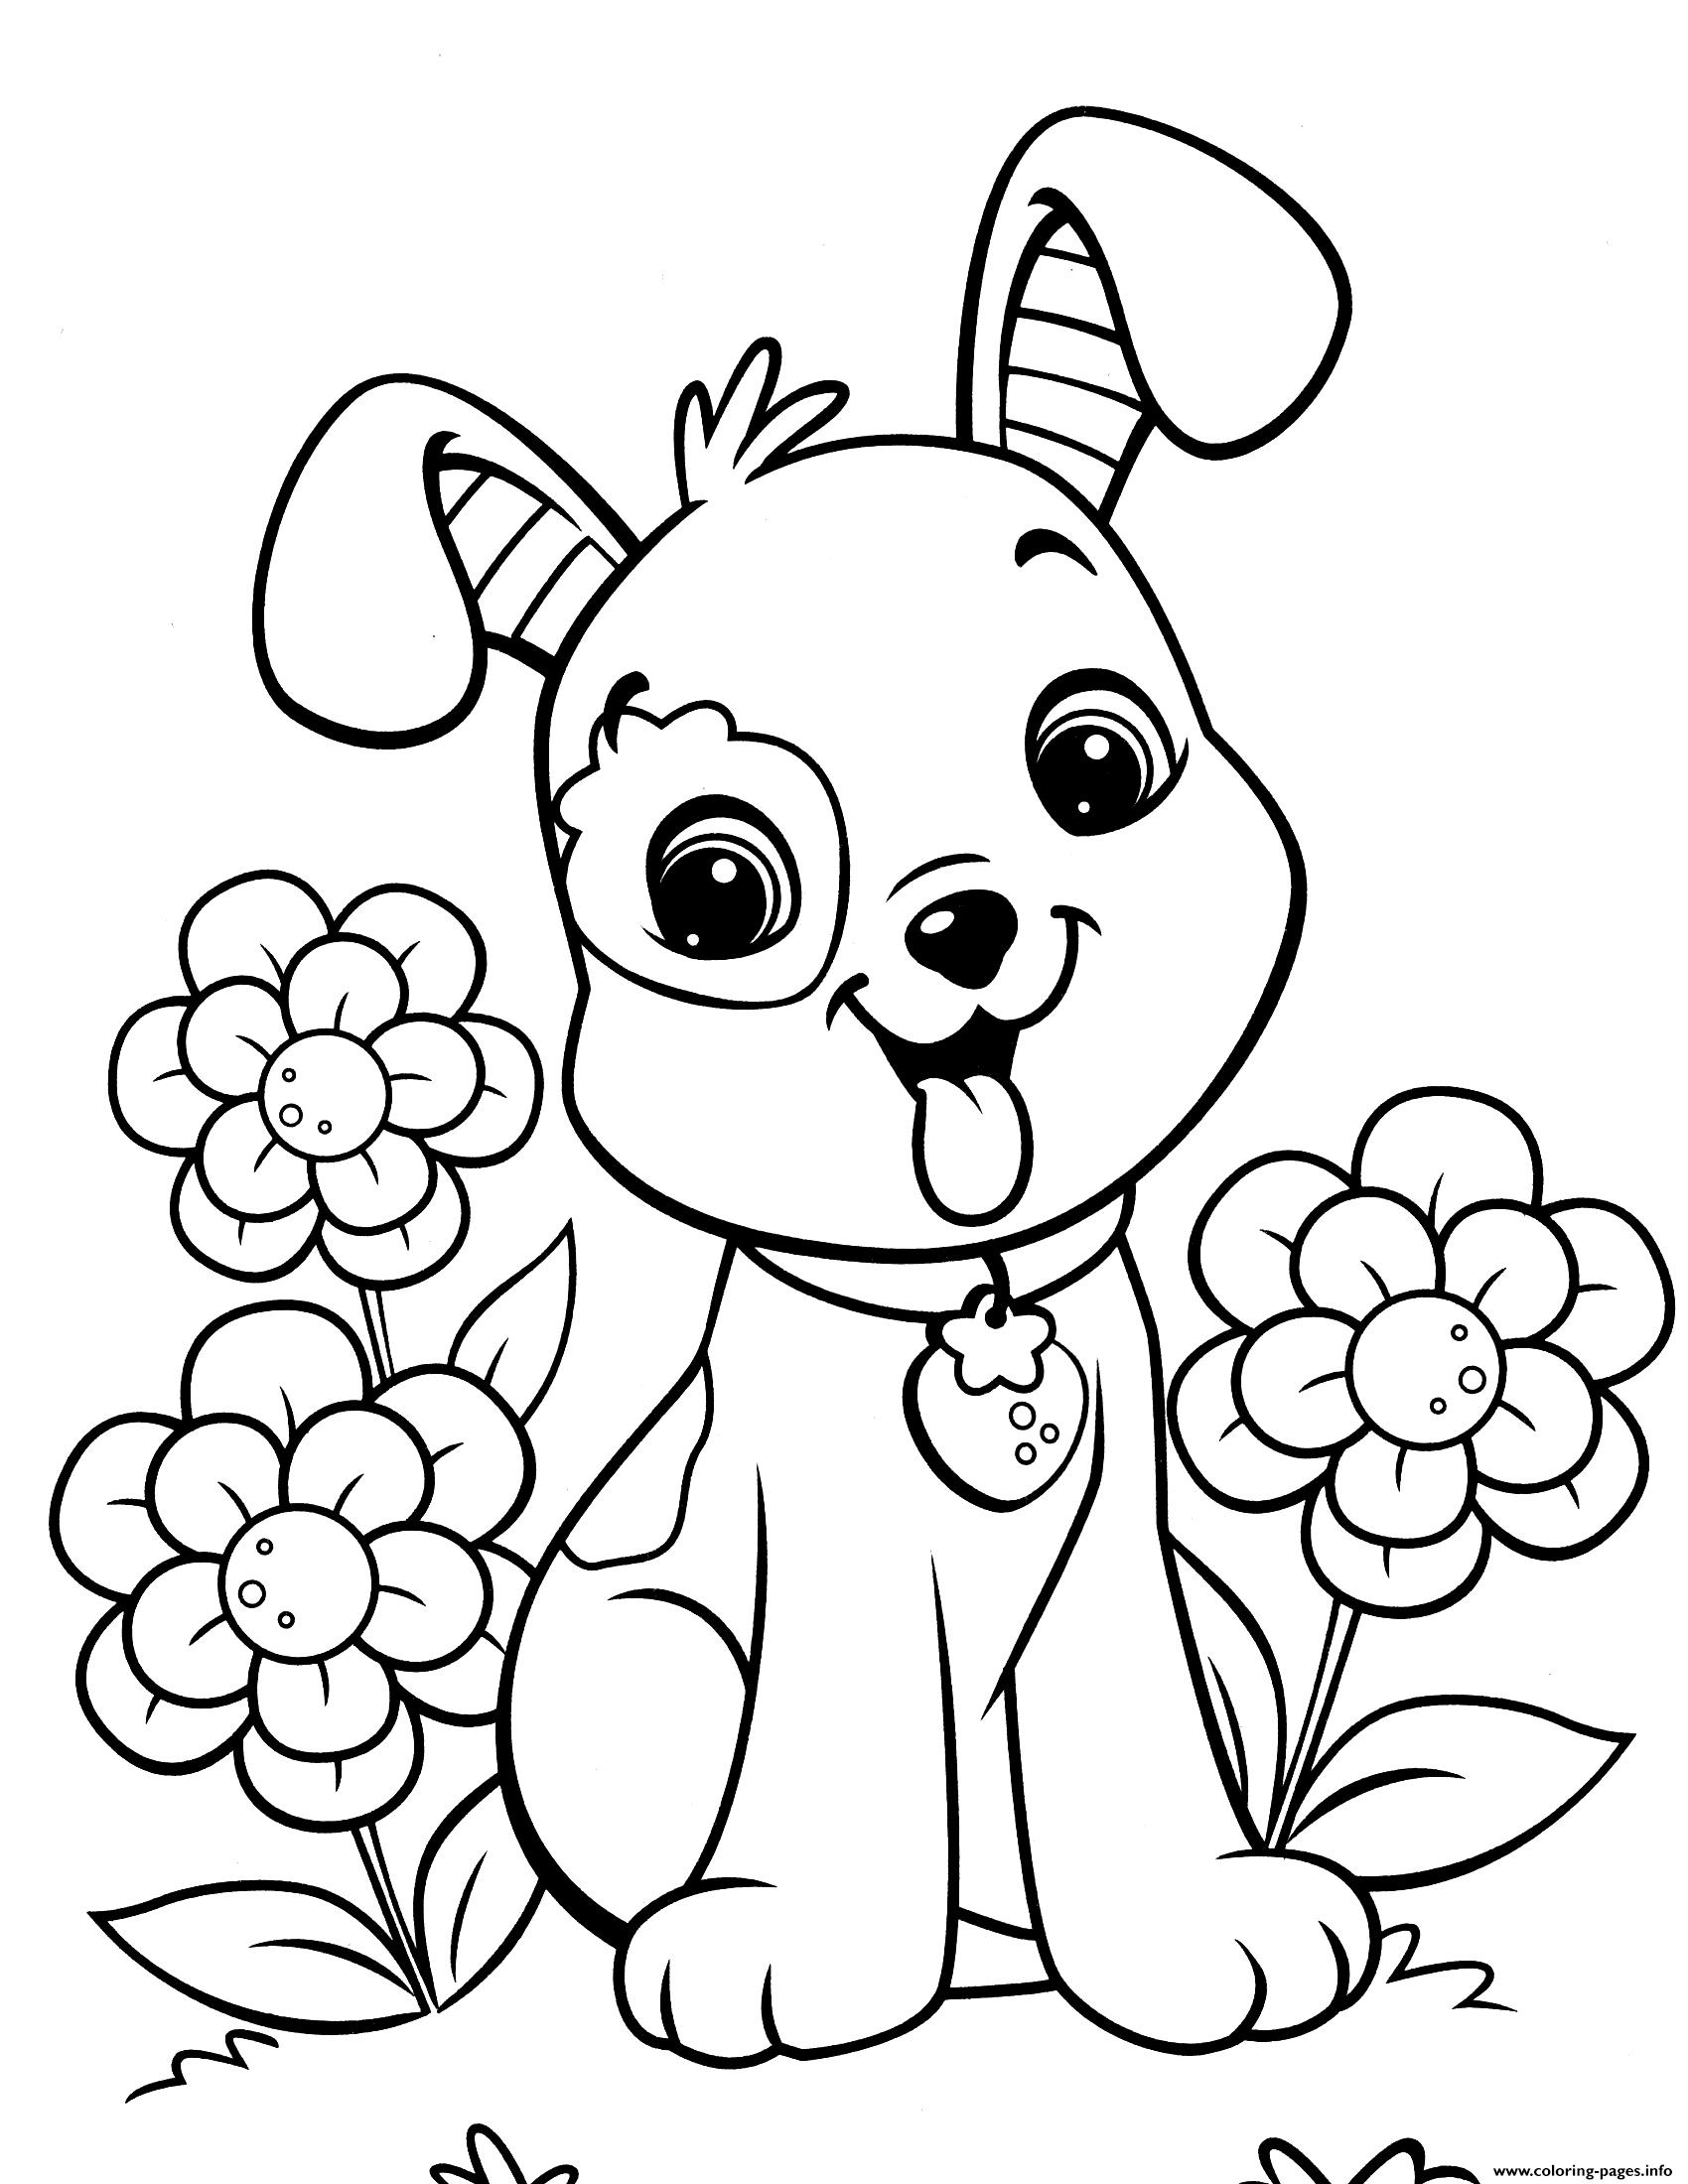 Cute Puppy Best For Kids coloring pages